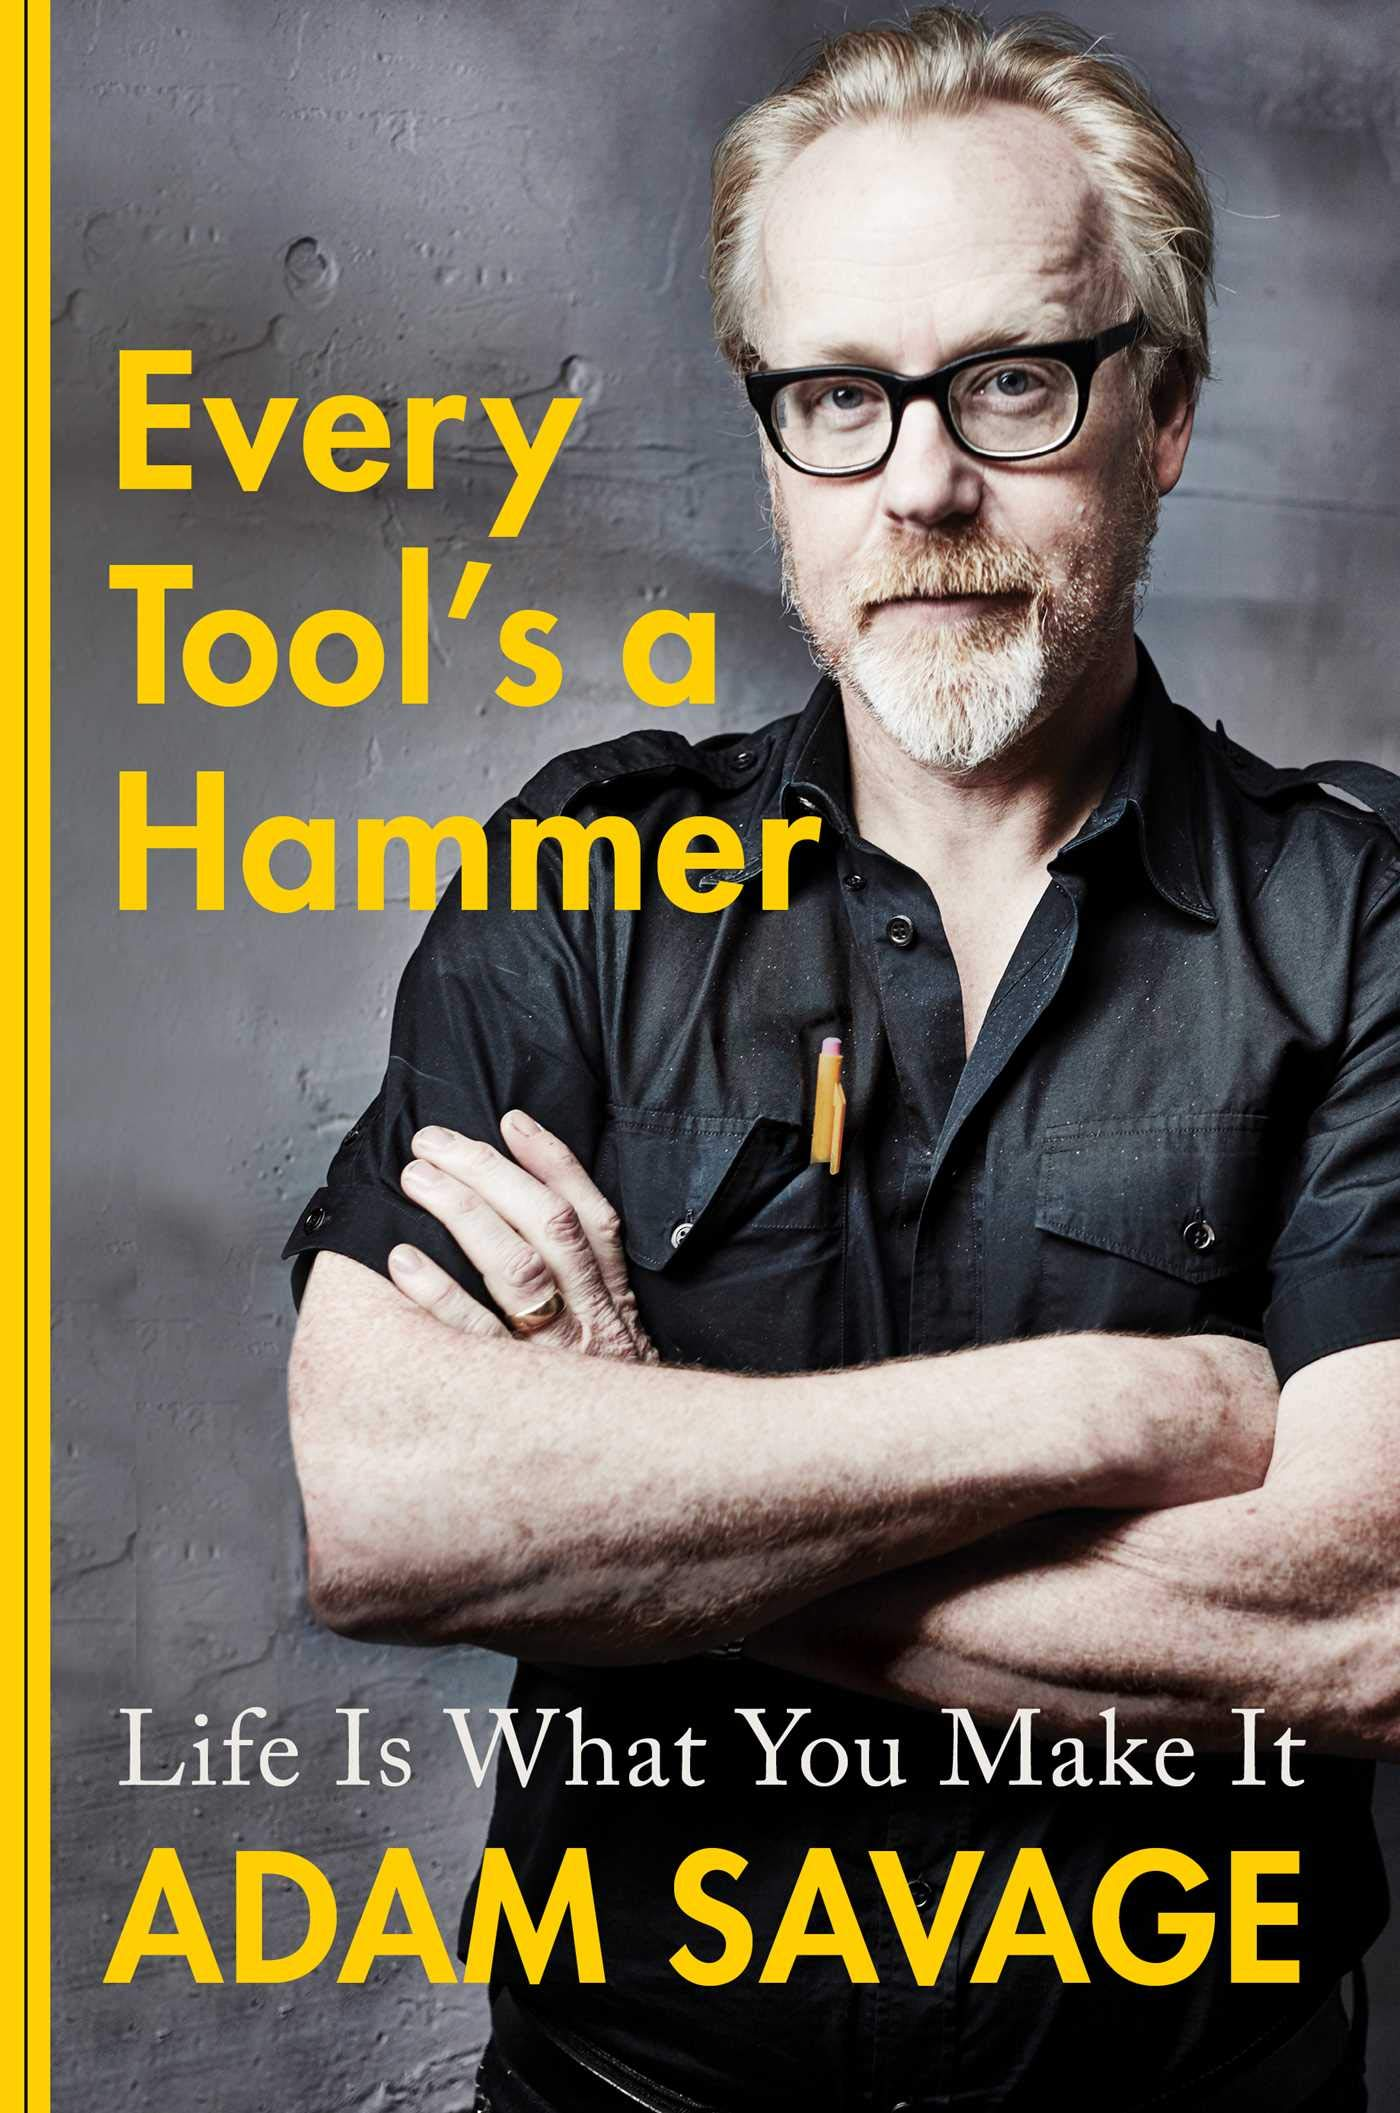 Friday Reads: Every Tool's a Hammer Life Is What You Make It by AdamSavage